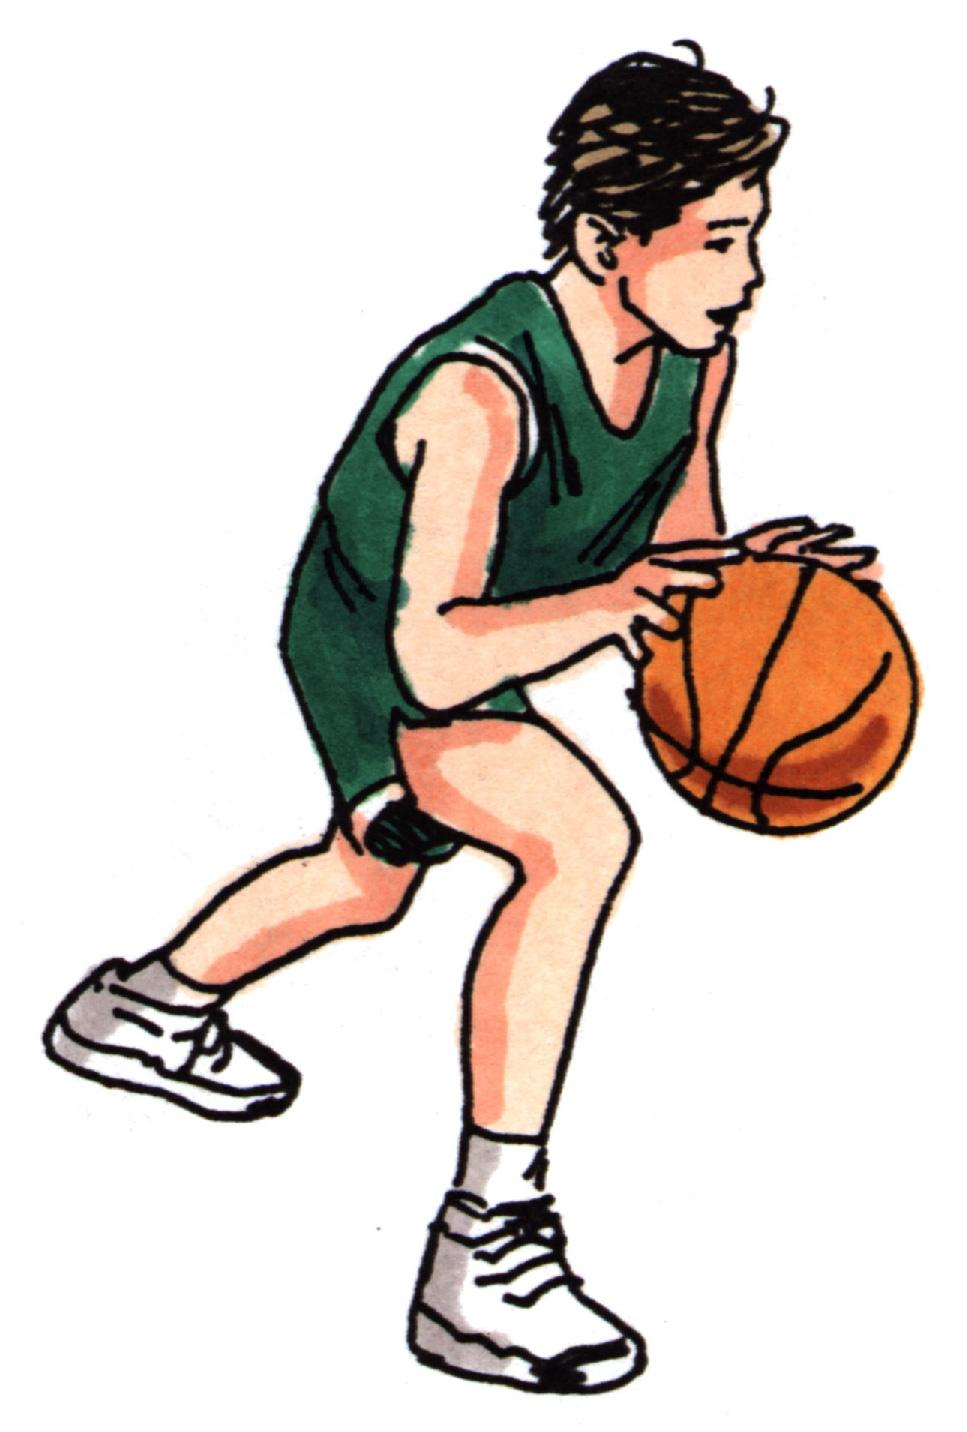 967x1432 Basketball Clip Art Graphics, Images, Photos Download